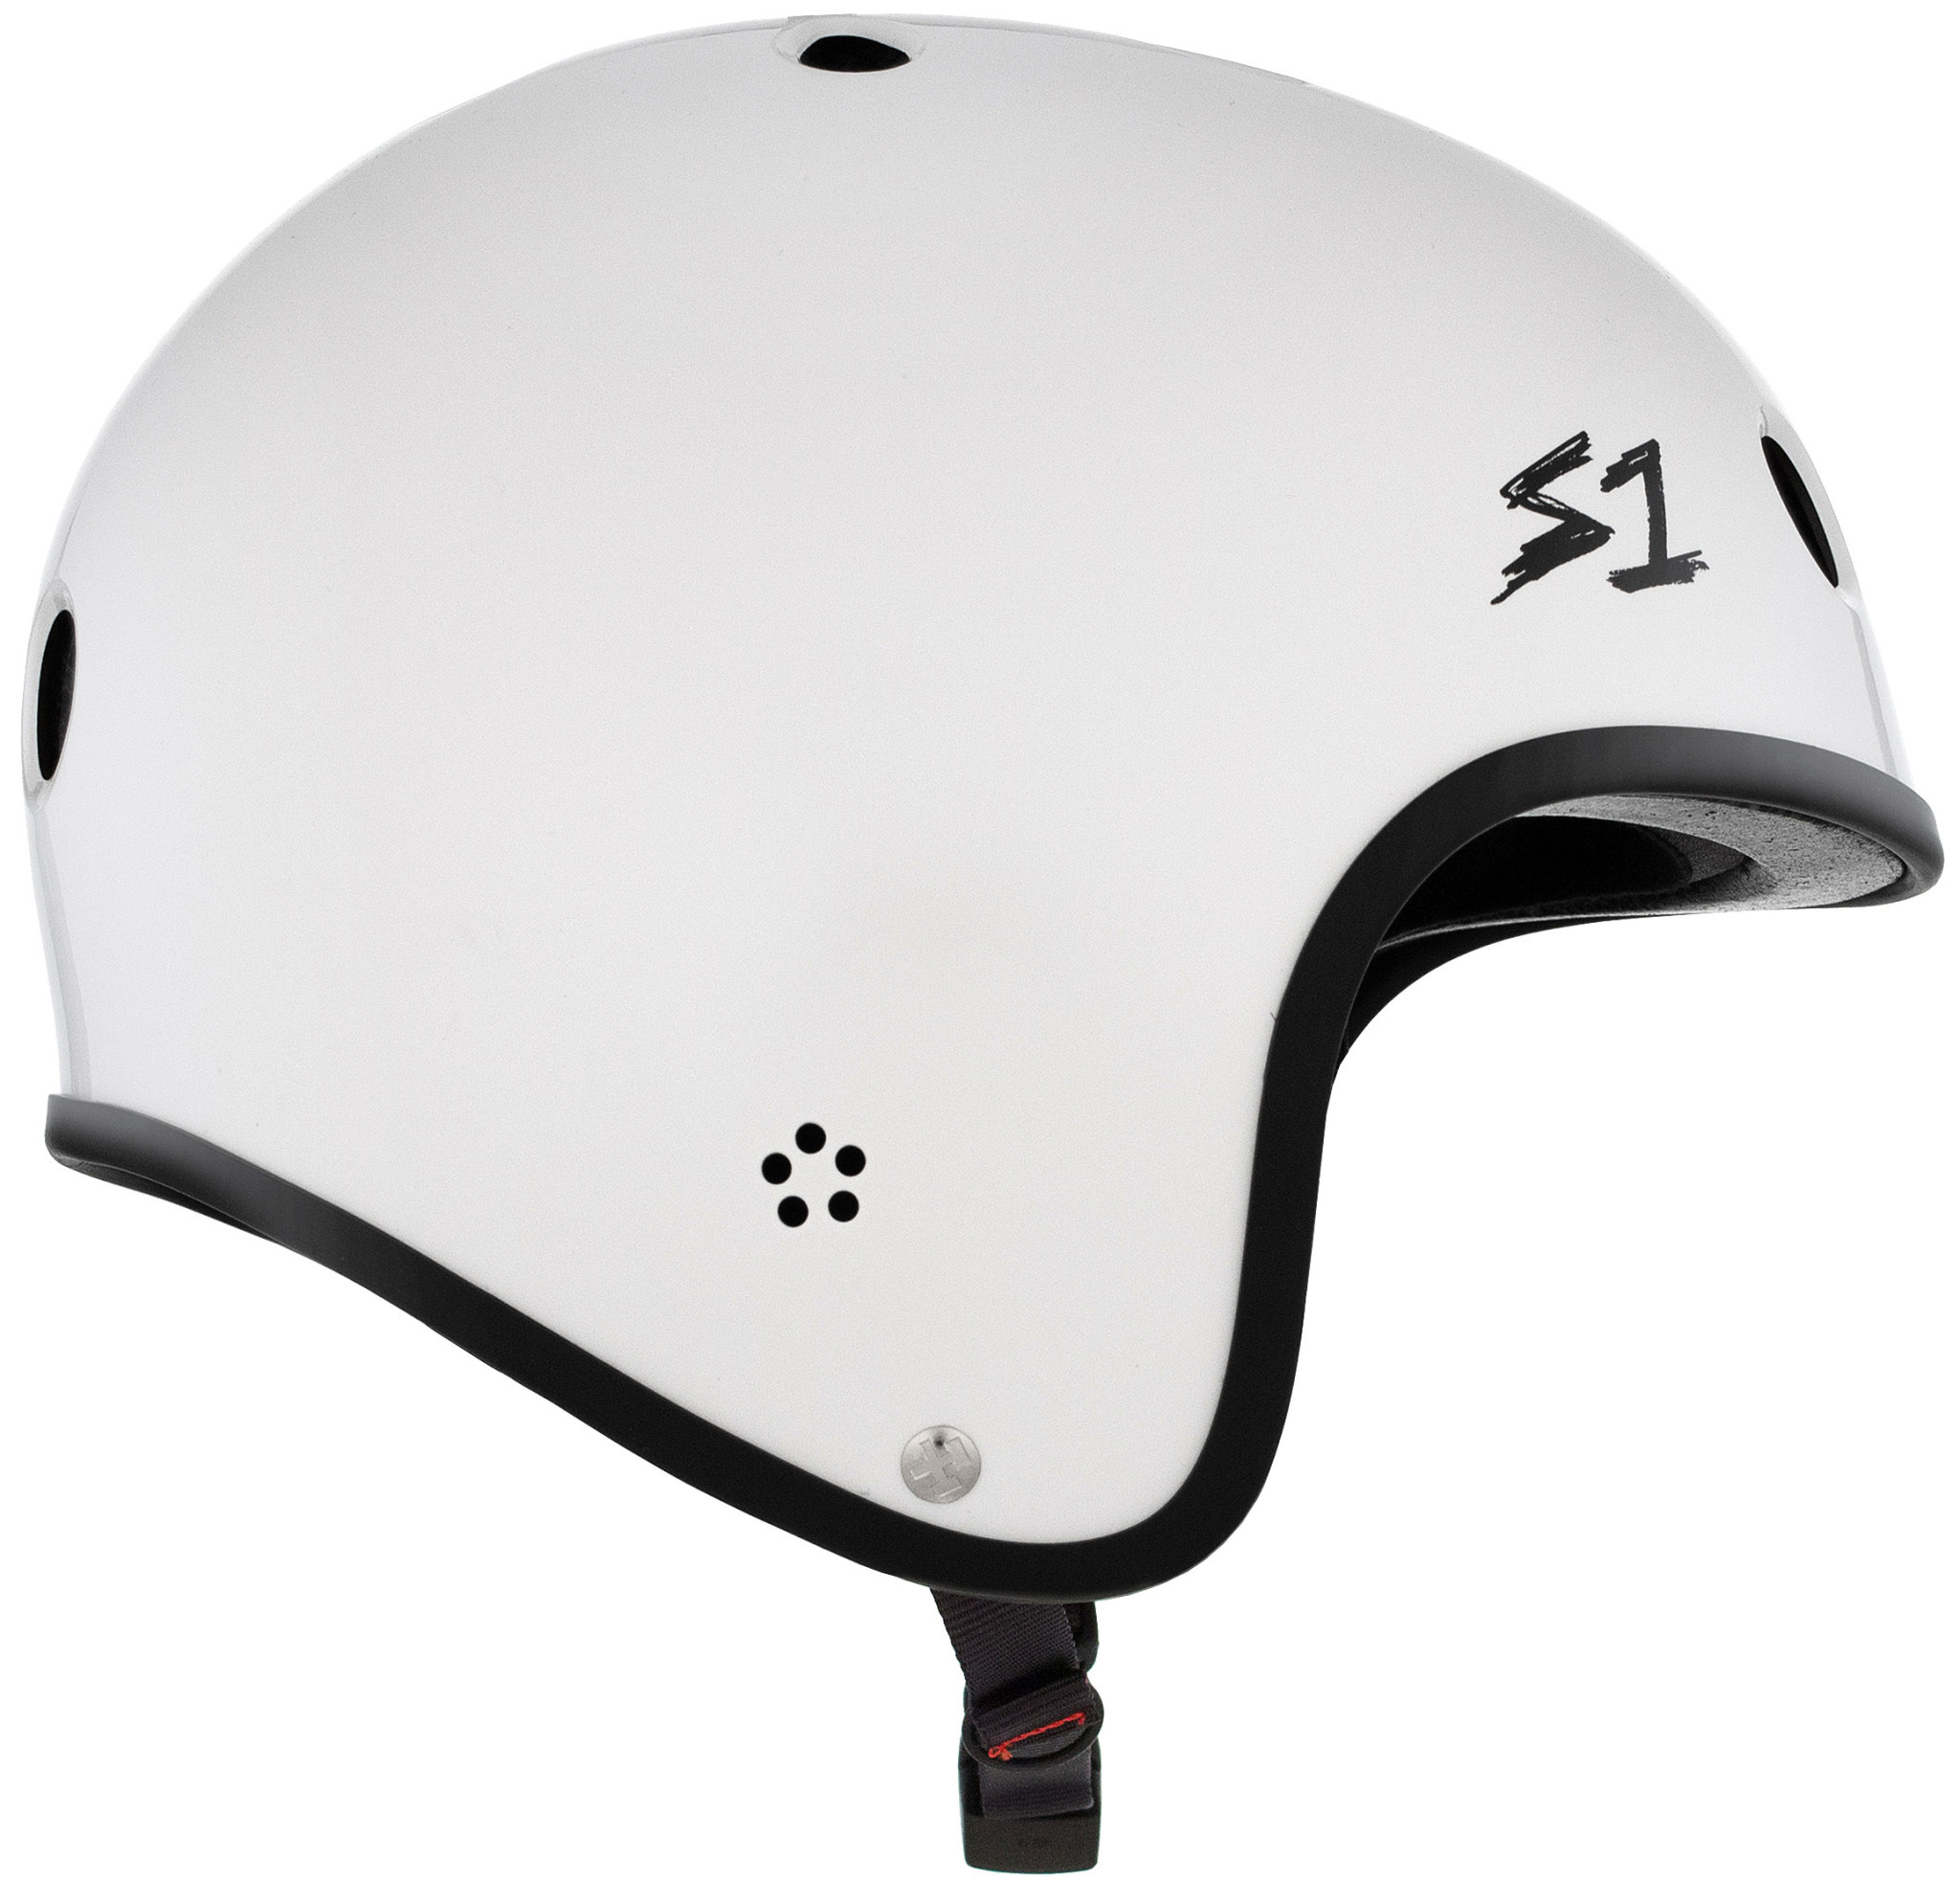 S-1 Retro Lifer Helmet - White Gloss